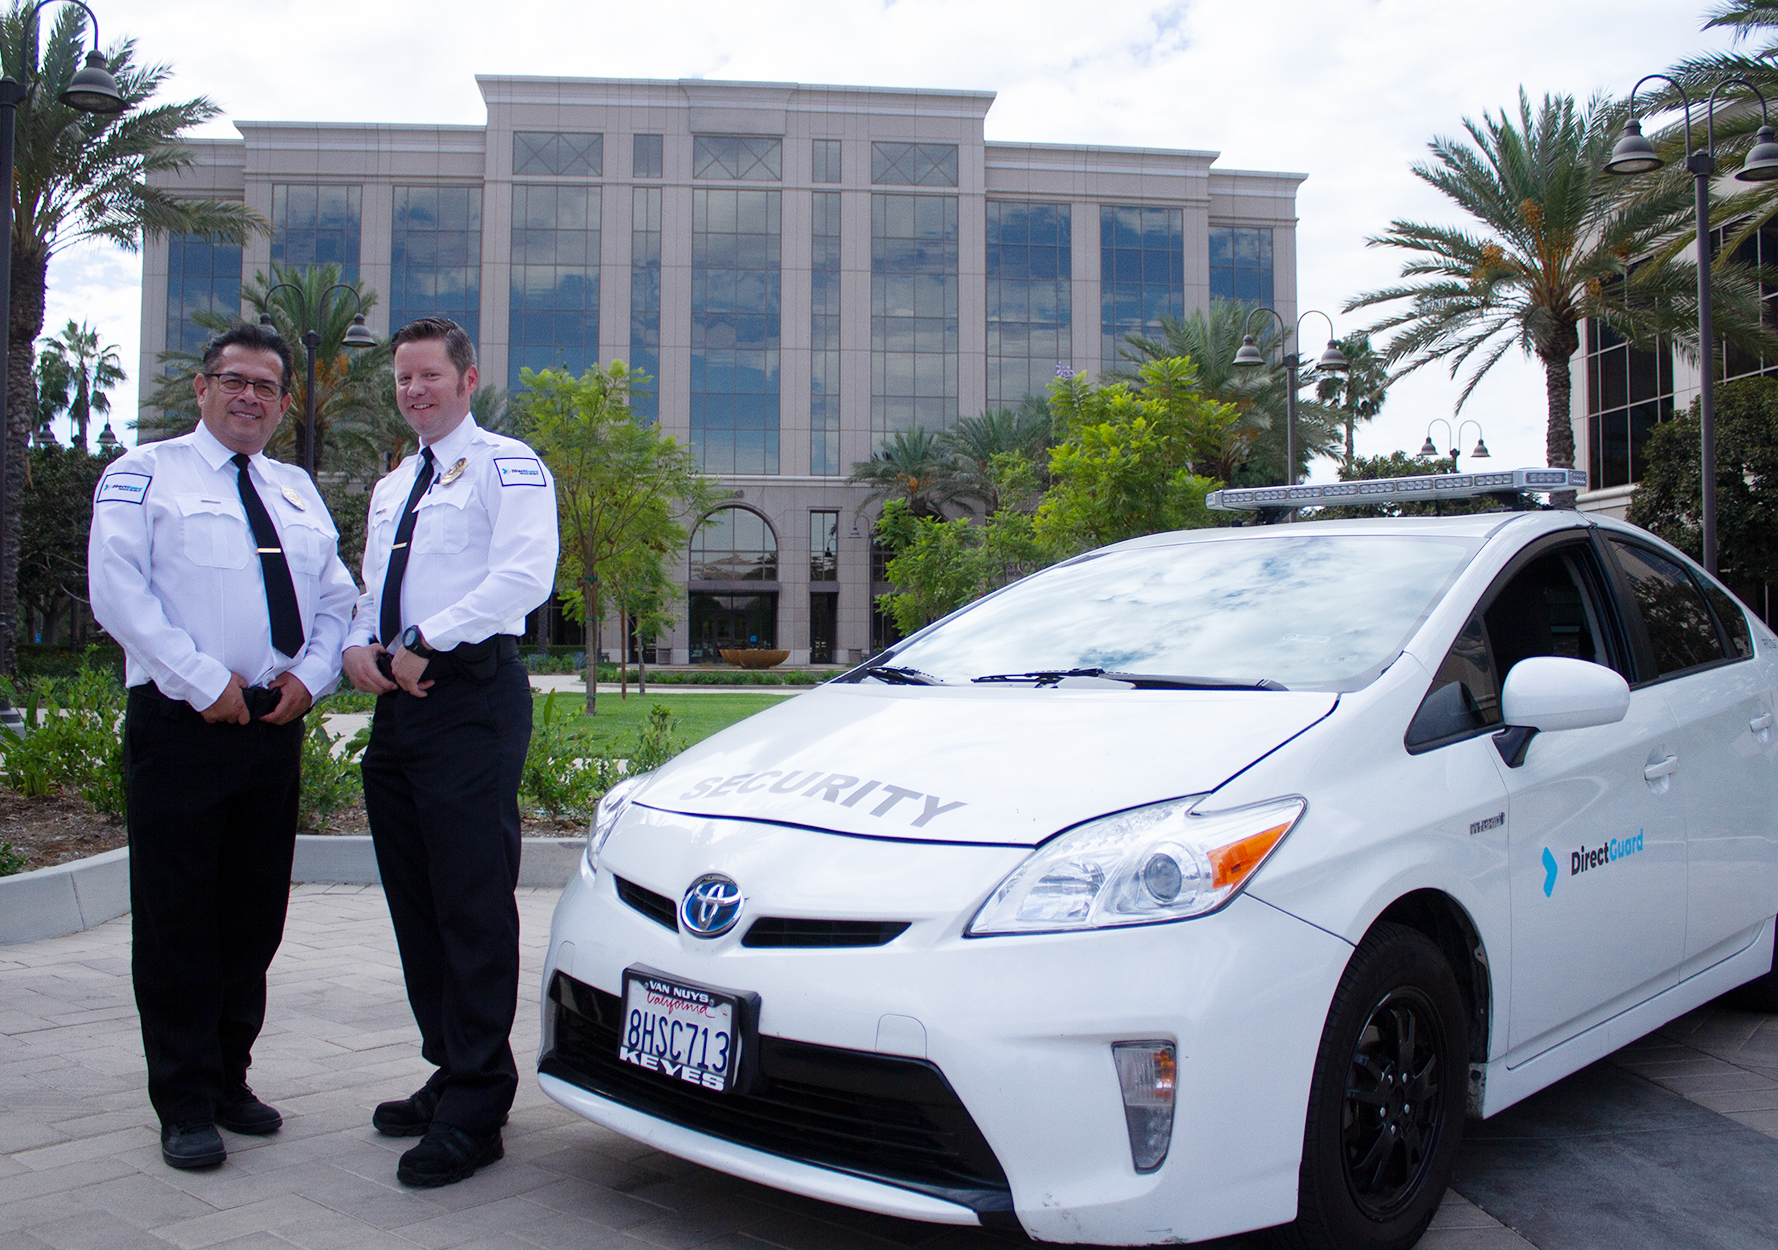 Mobile Patrol Services in California